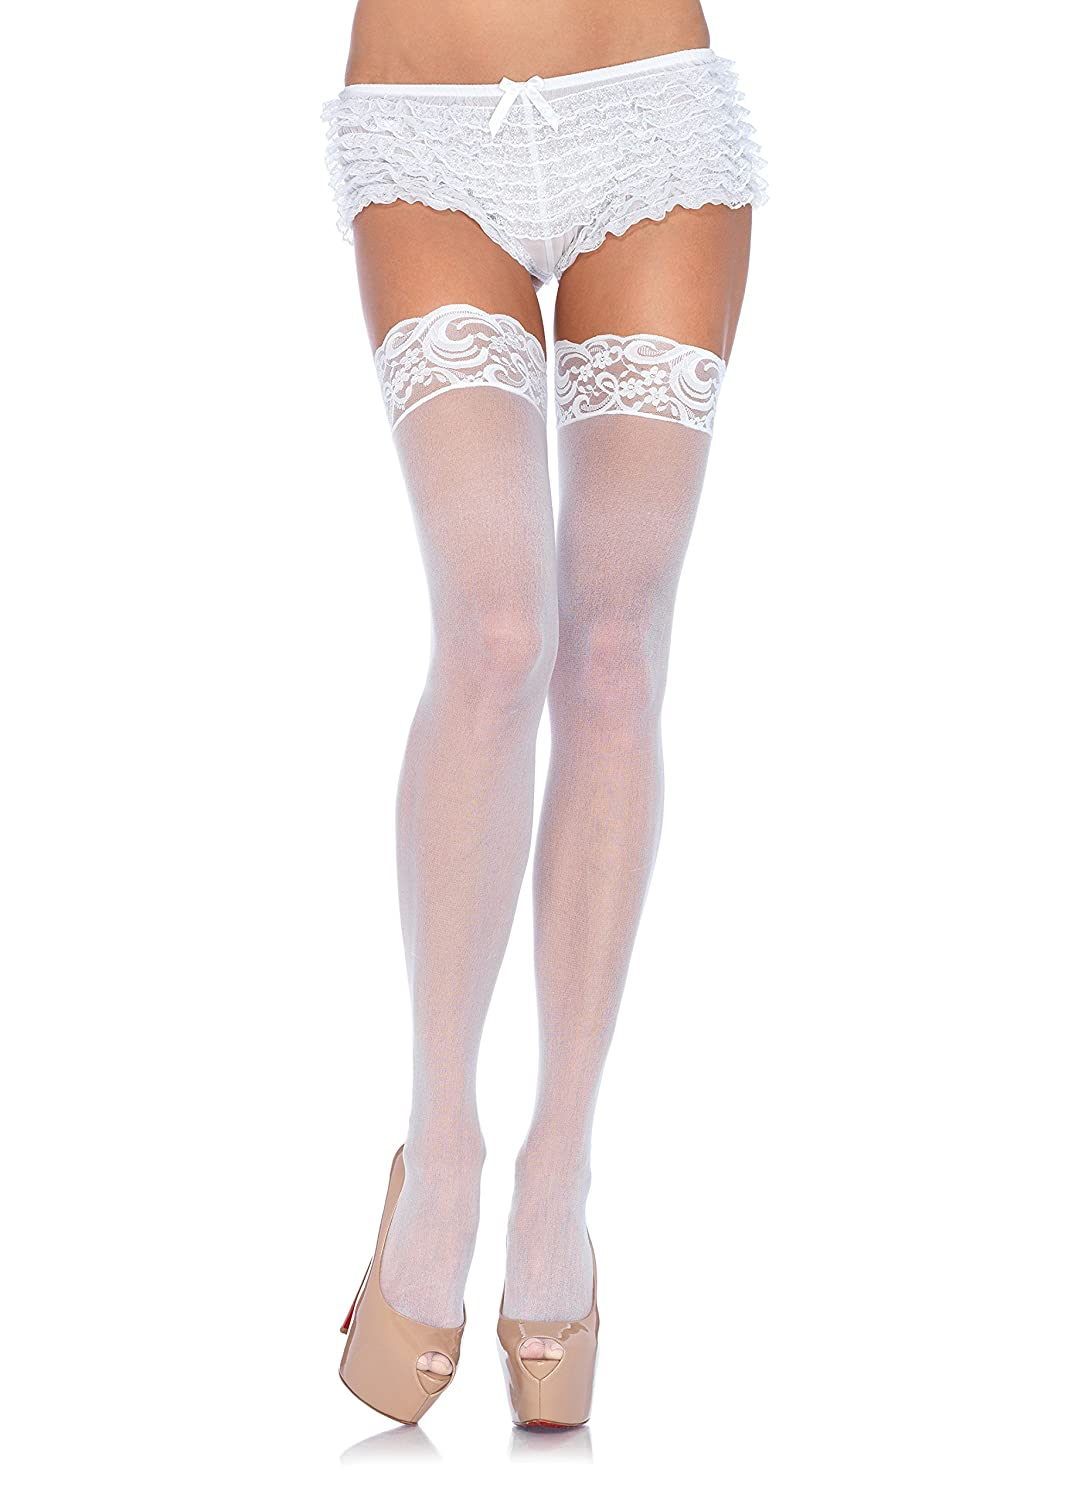 Leg Avenue Women's Queen Sheer Thigh Highs with Lace Top #1011Q LA-1011Q-0001